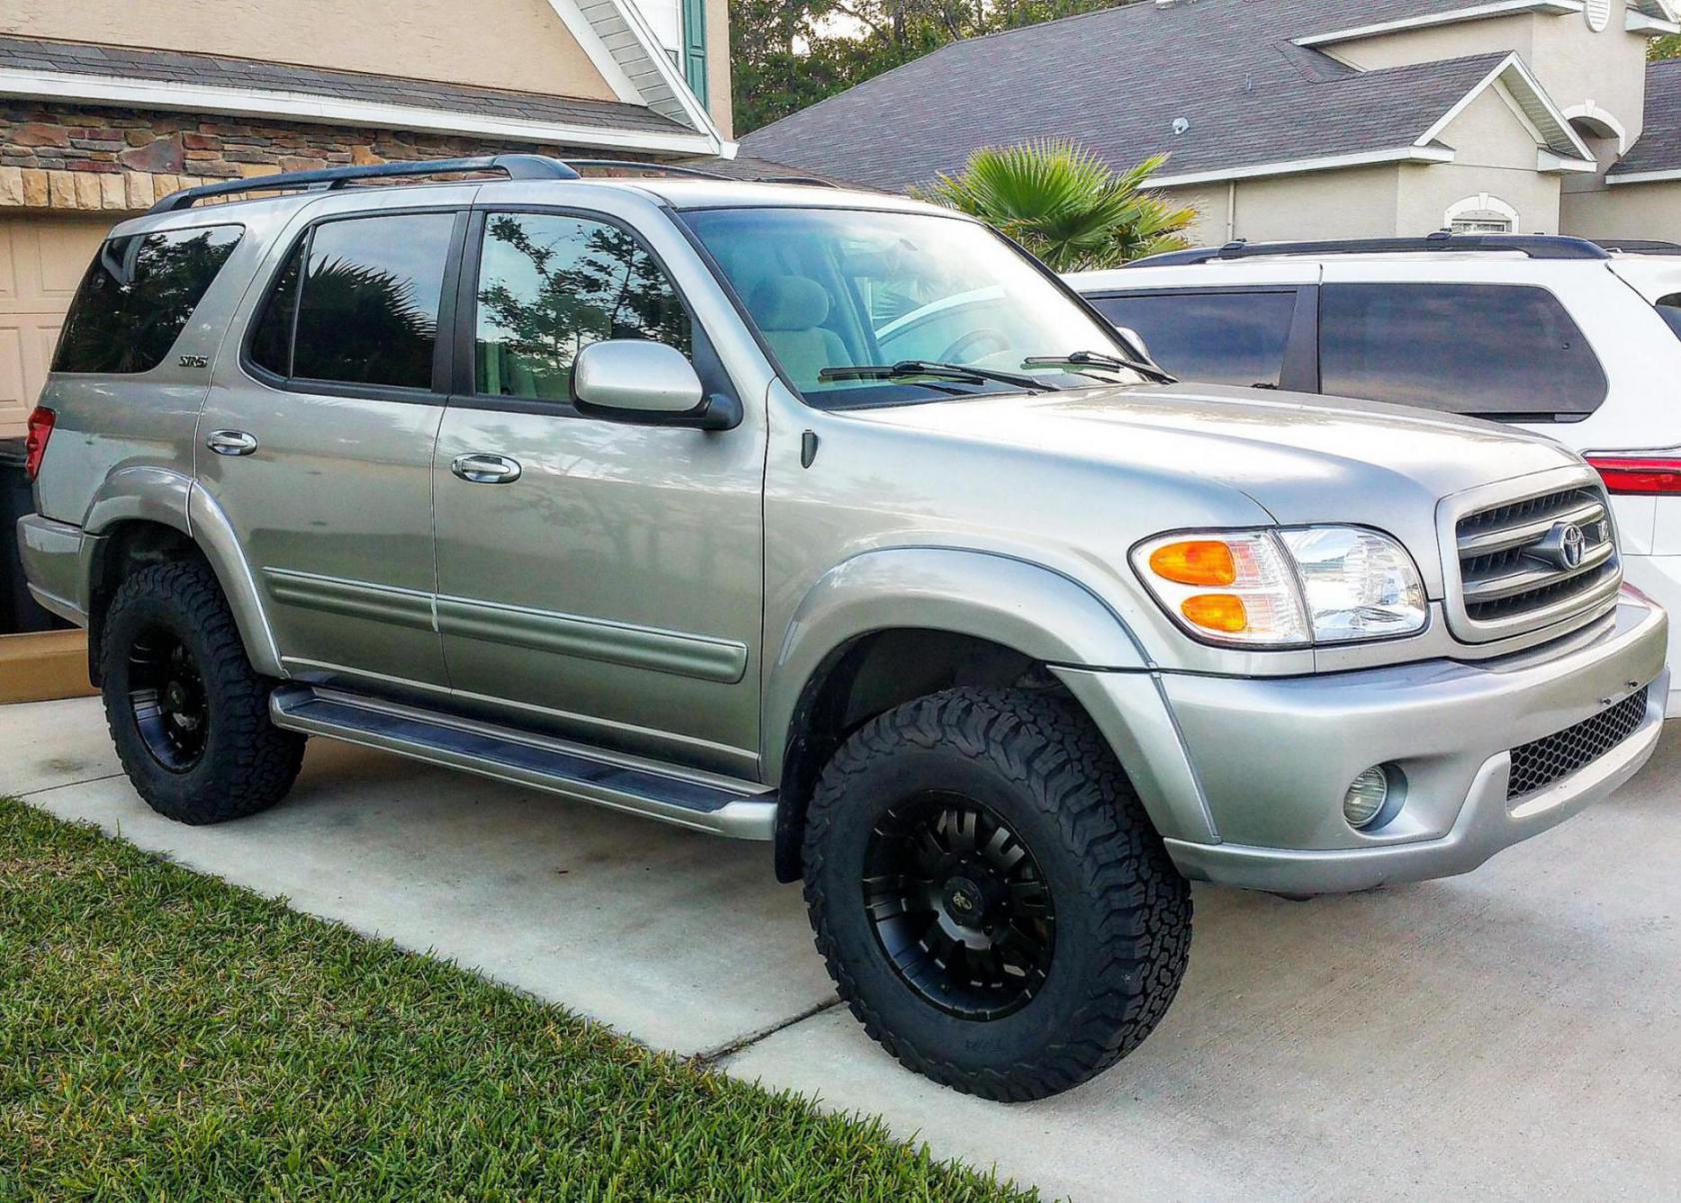 2004 sequoia sr5 4x4 lift and tires question toyota nation forum toyota car and truck forums